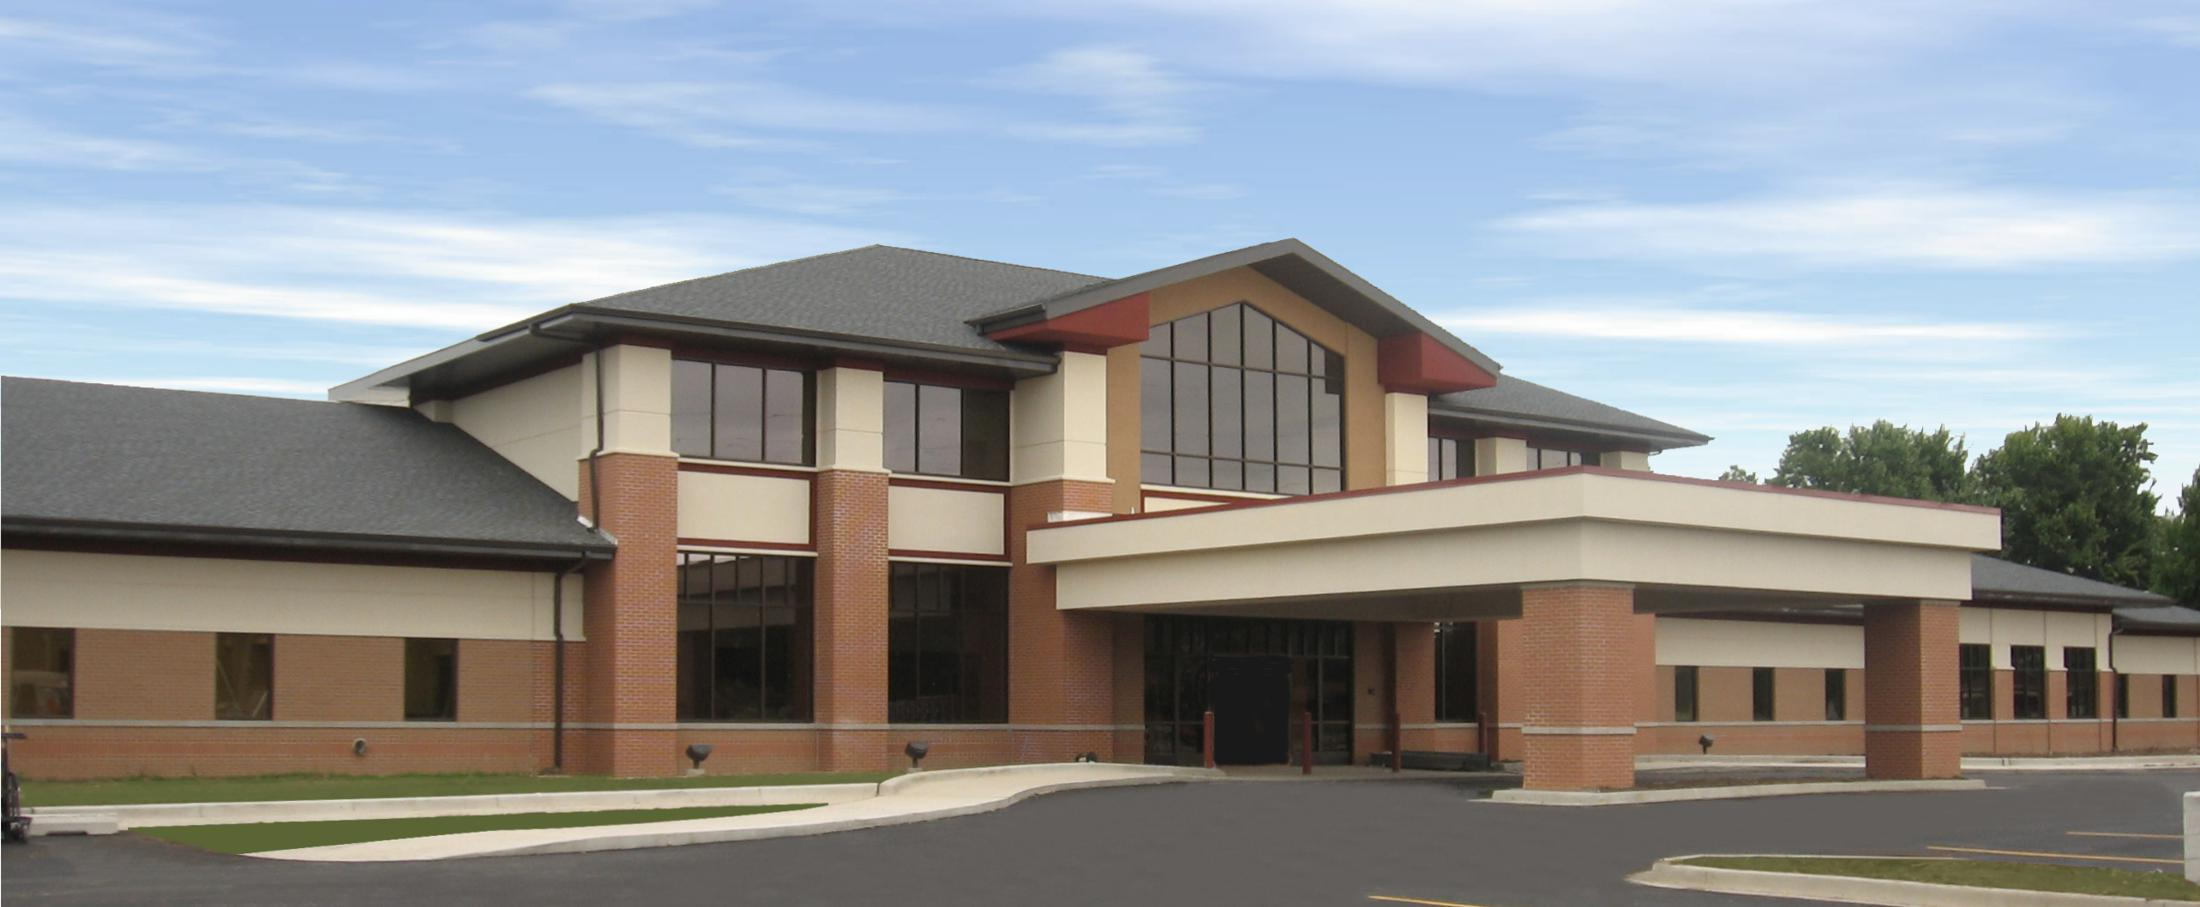 Cancer Care Center of Decatur